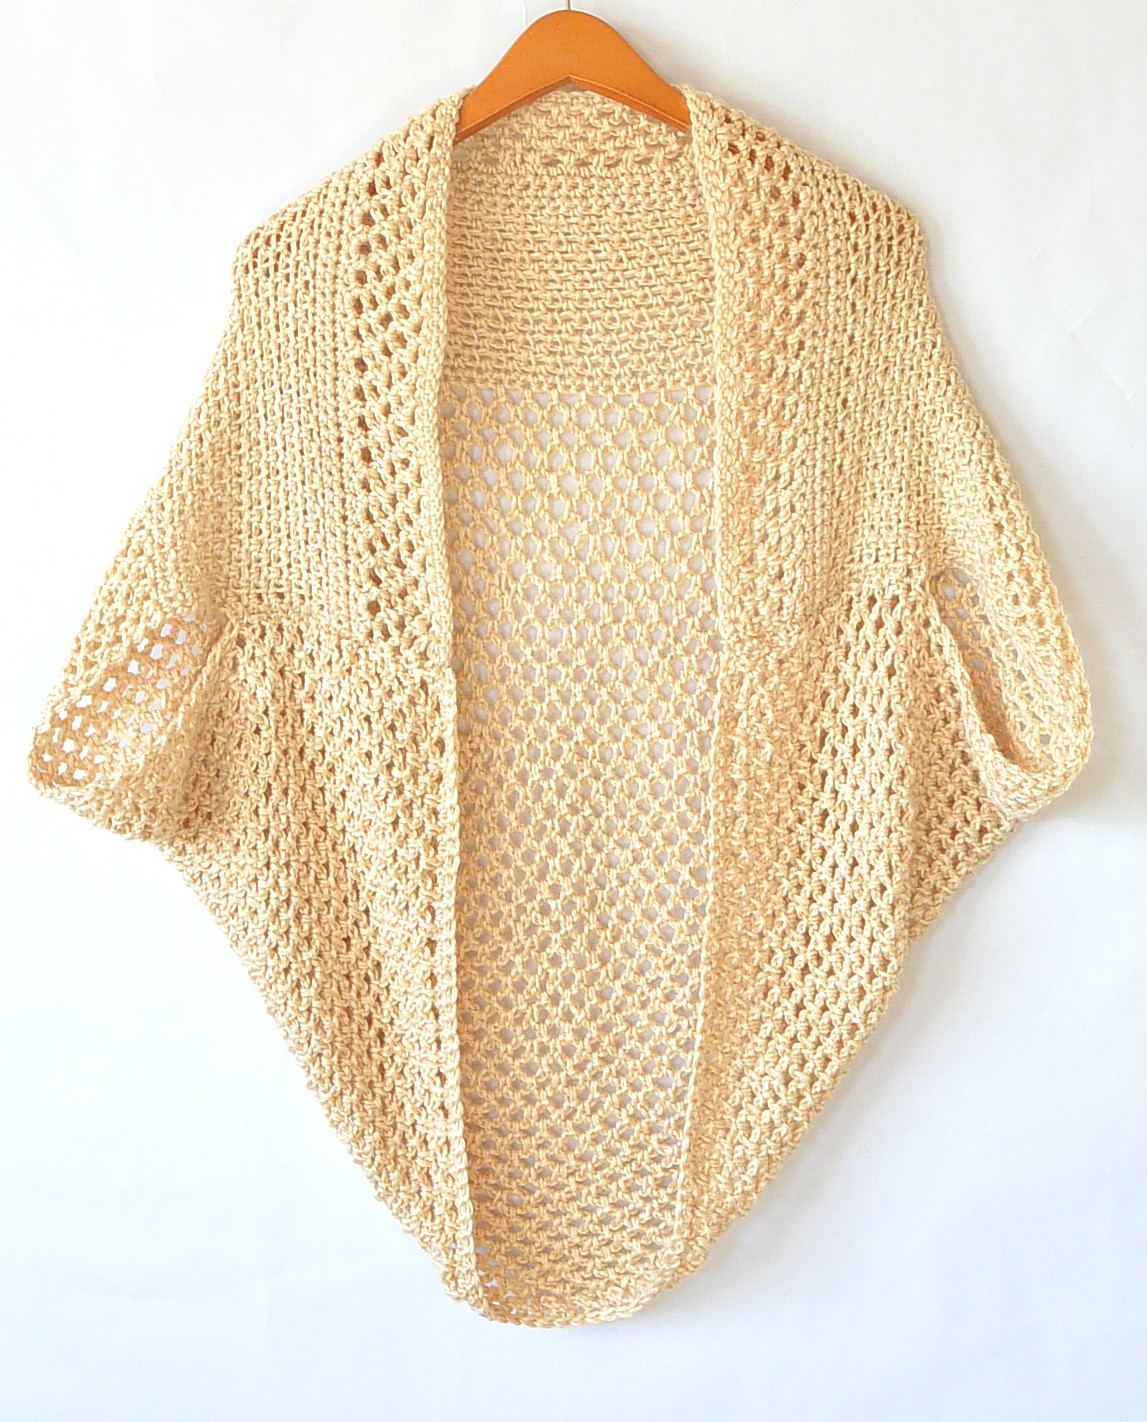 Crochet Pullover Sweater Luxury Mod Mesh Honey Blanket Sweater – Mama In A Stitch Of Delightful 48 Pics Crochet Pullover Sweater